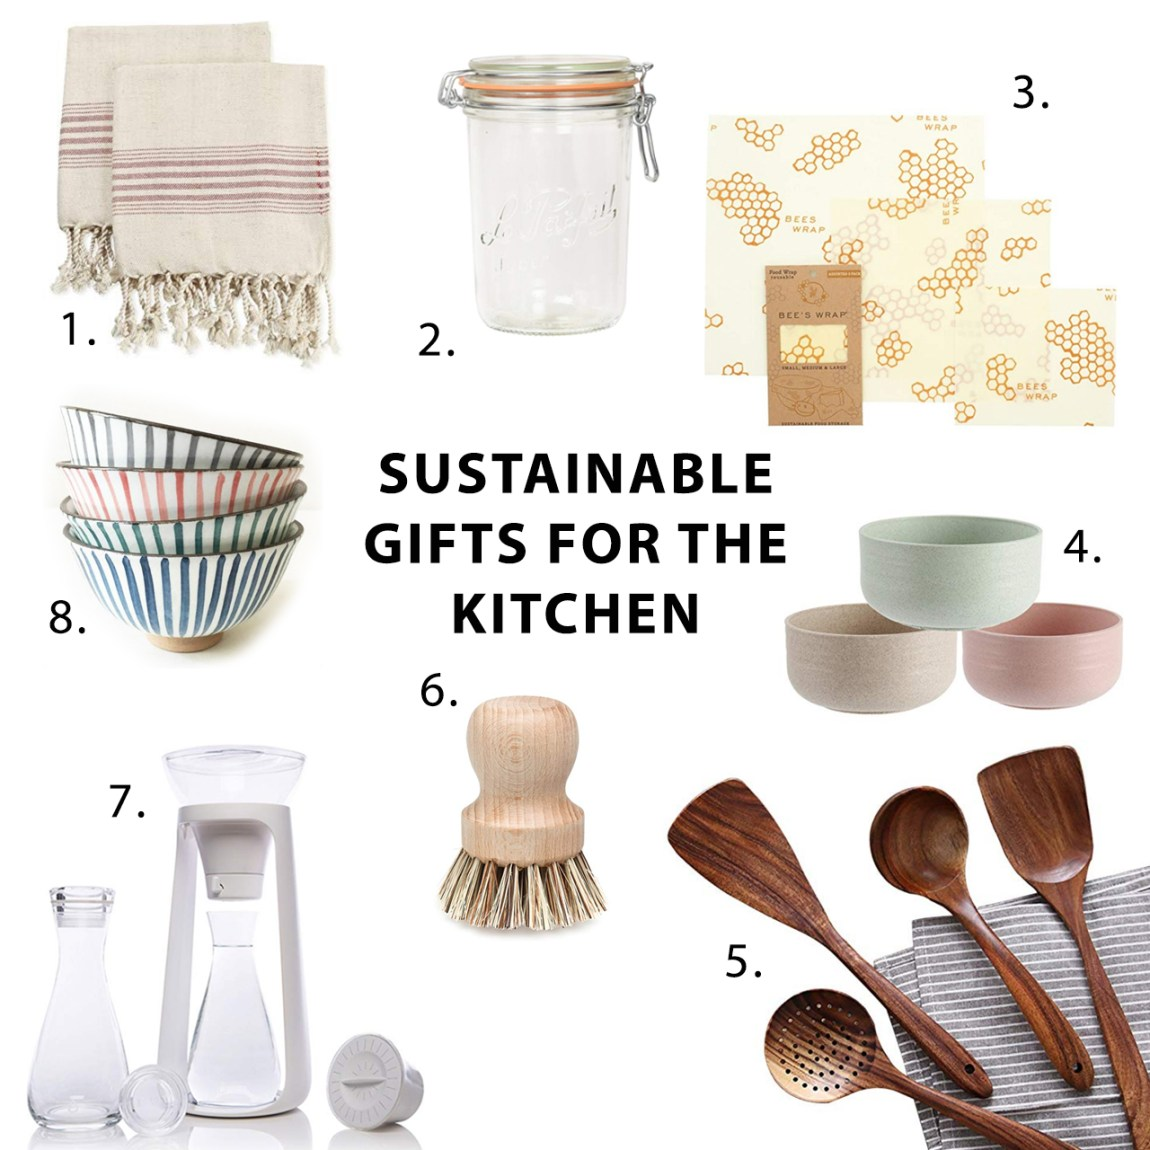 2018 Sustainable Gift Guide for the Kitchen